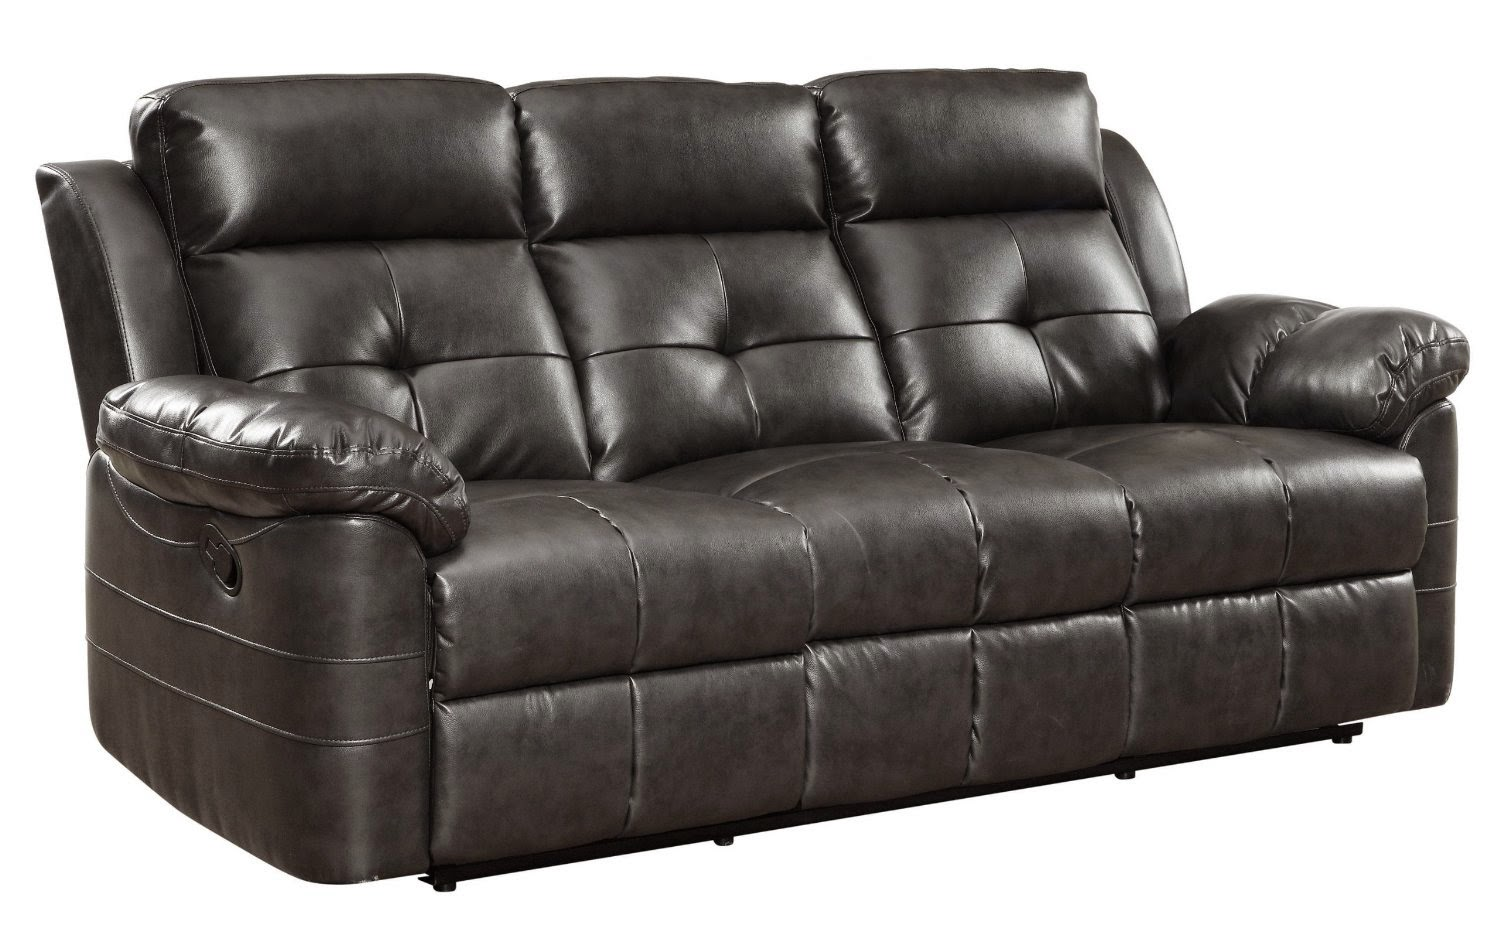 The Best Reclining Sofas Ratings Reviews Curved Leather Reclining Sofa Set